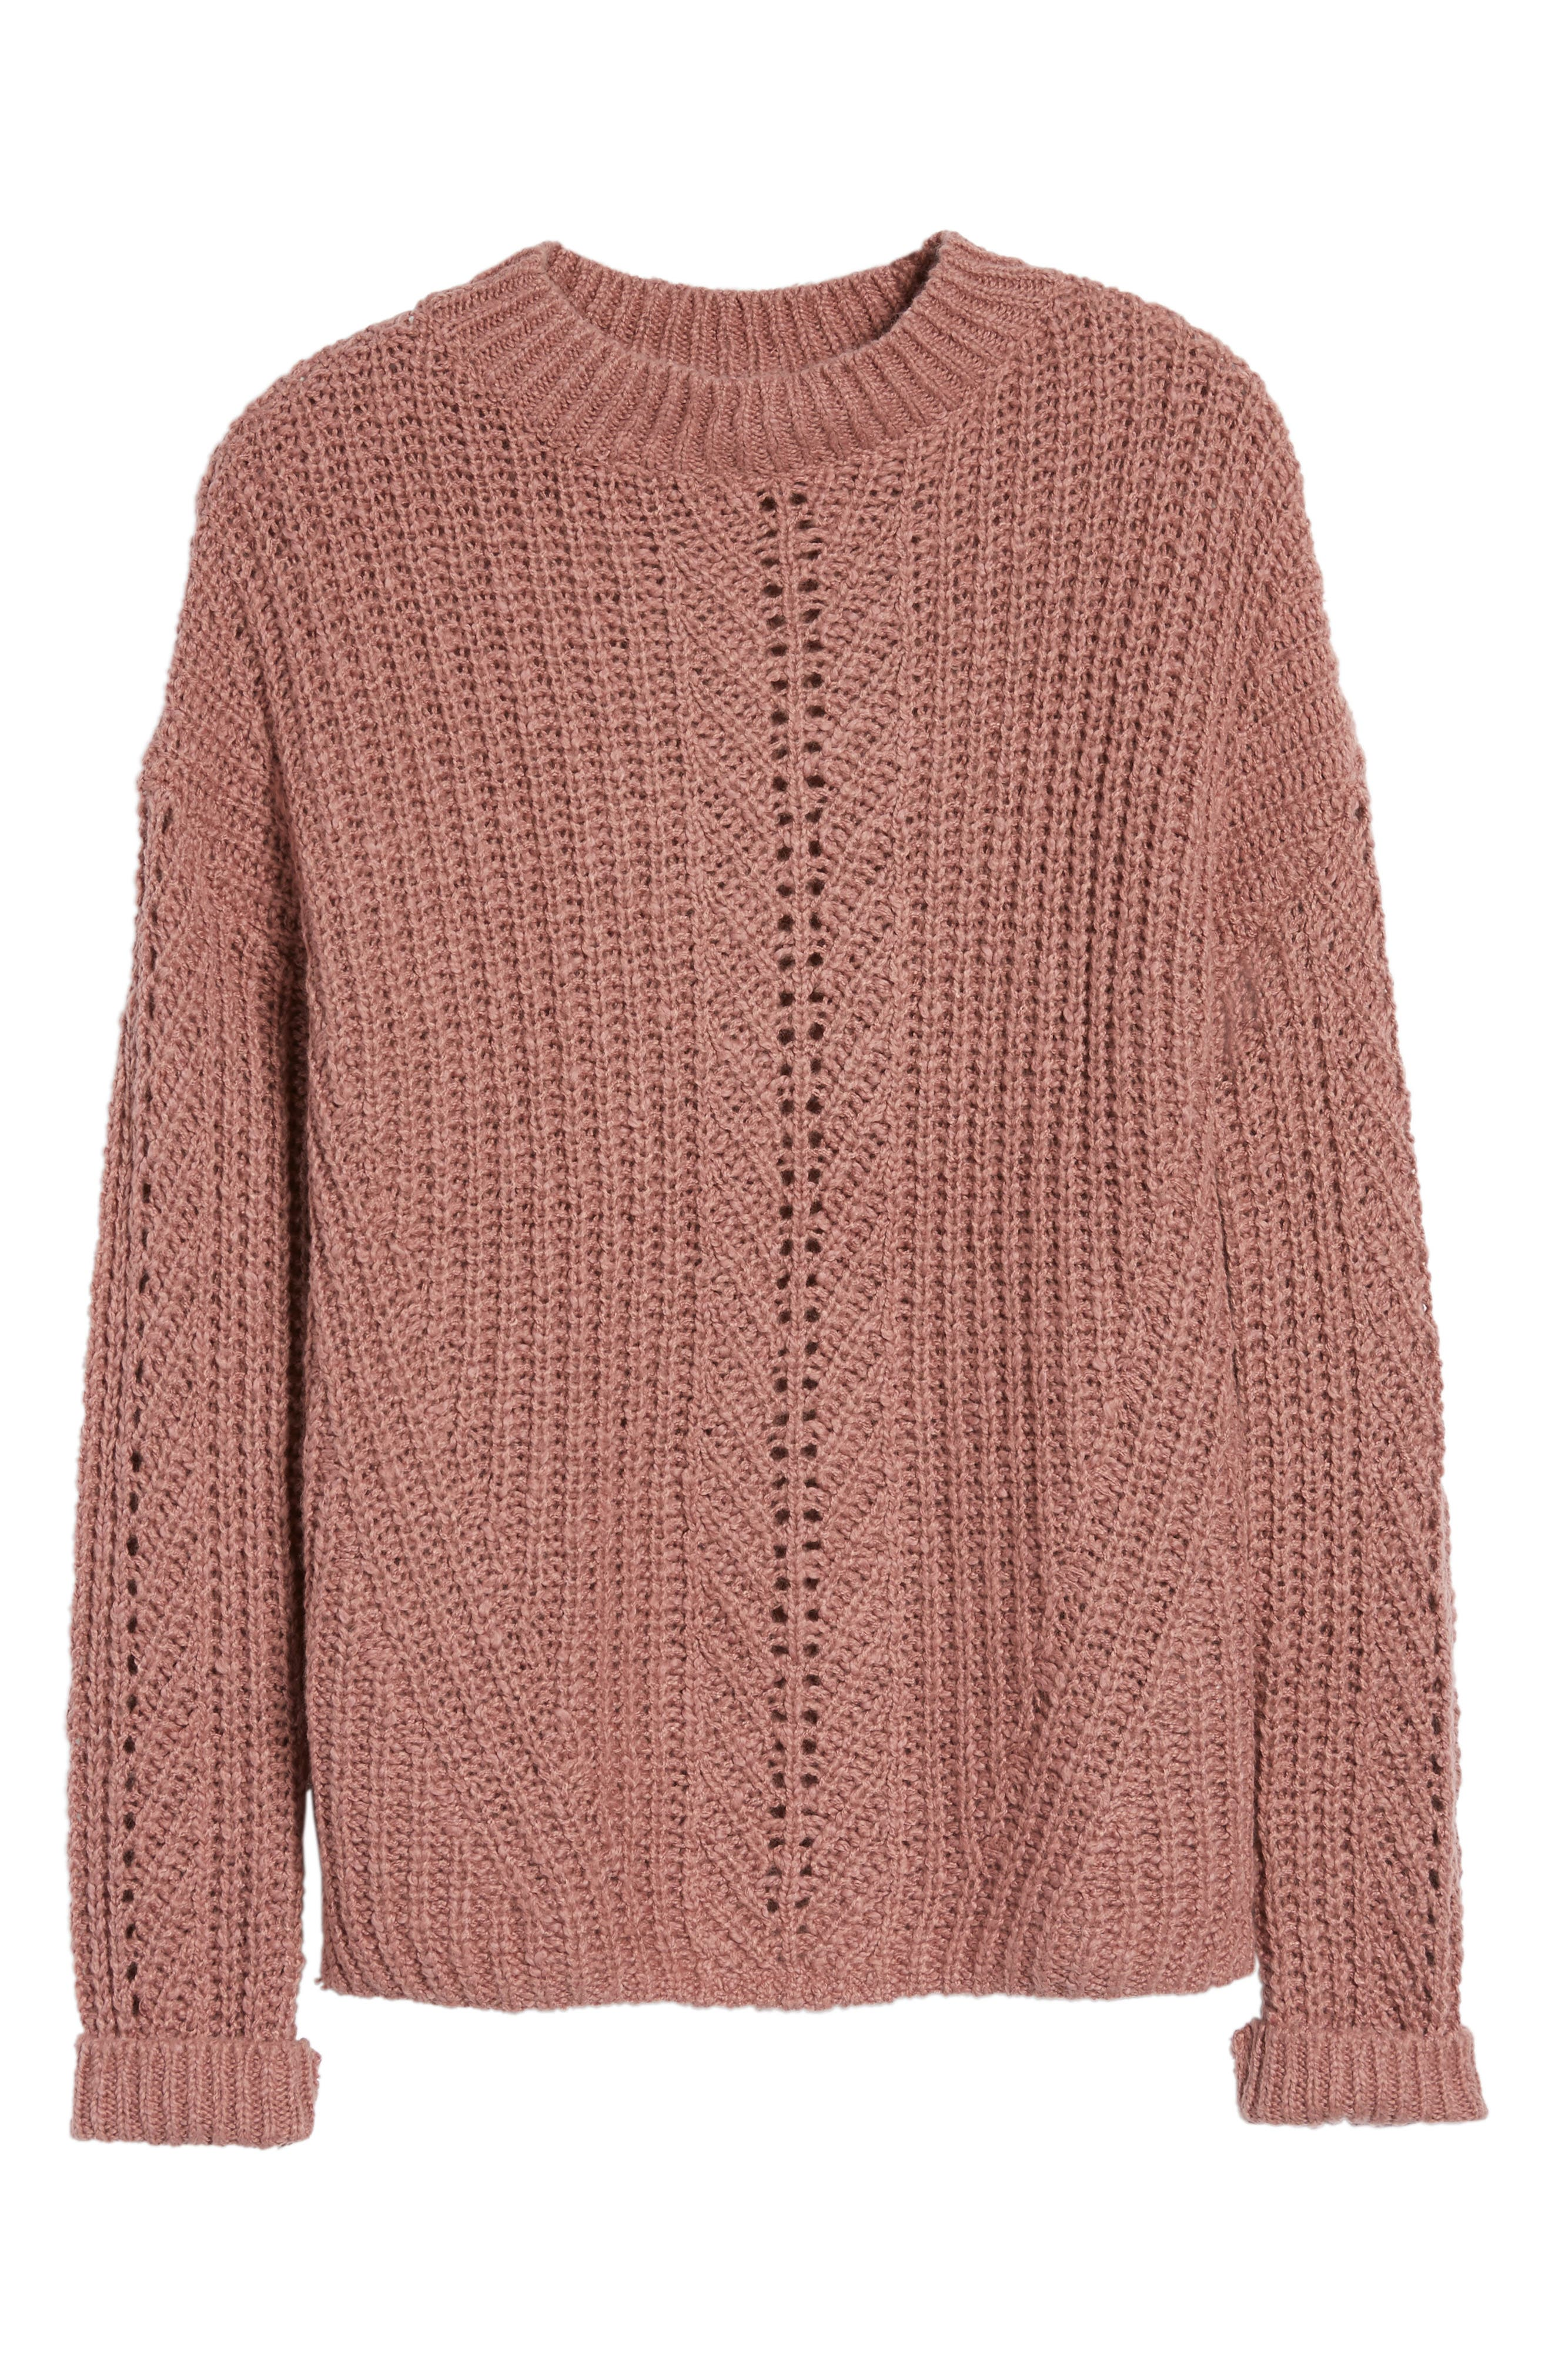 Open Stitch Sweater,                             Alternate thumbnail 6, color,                             676